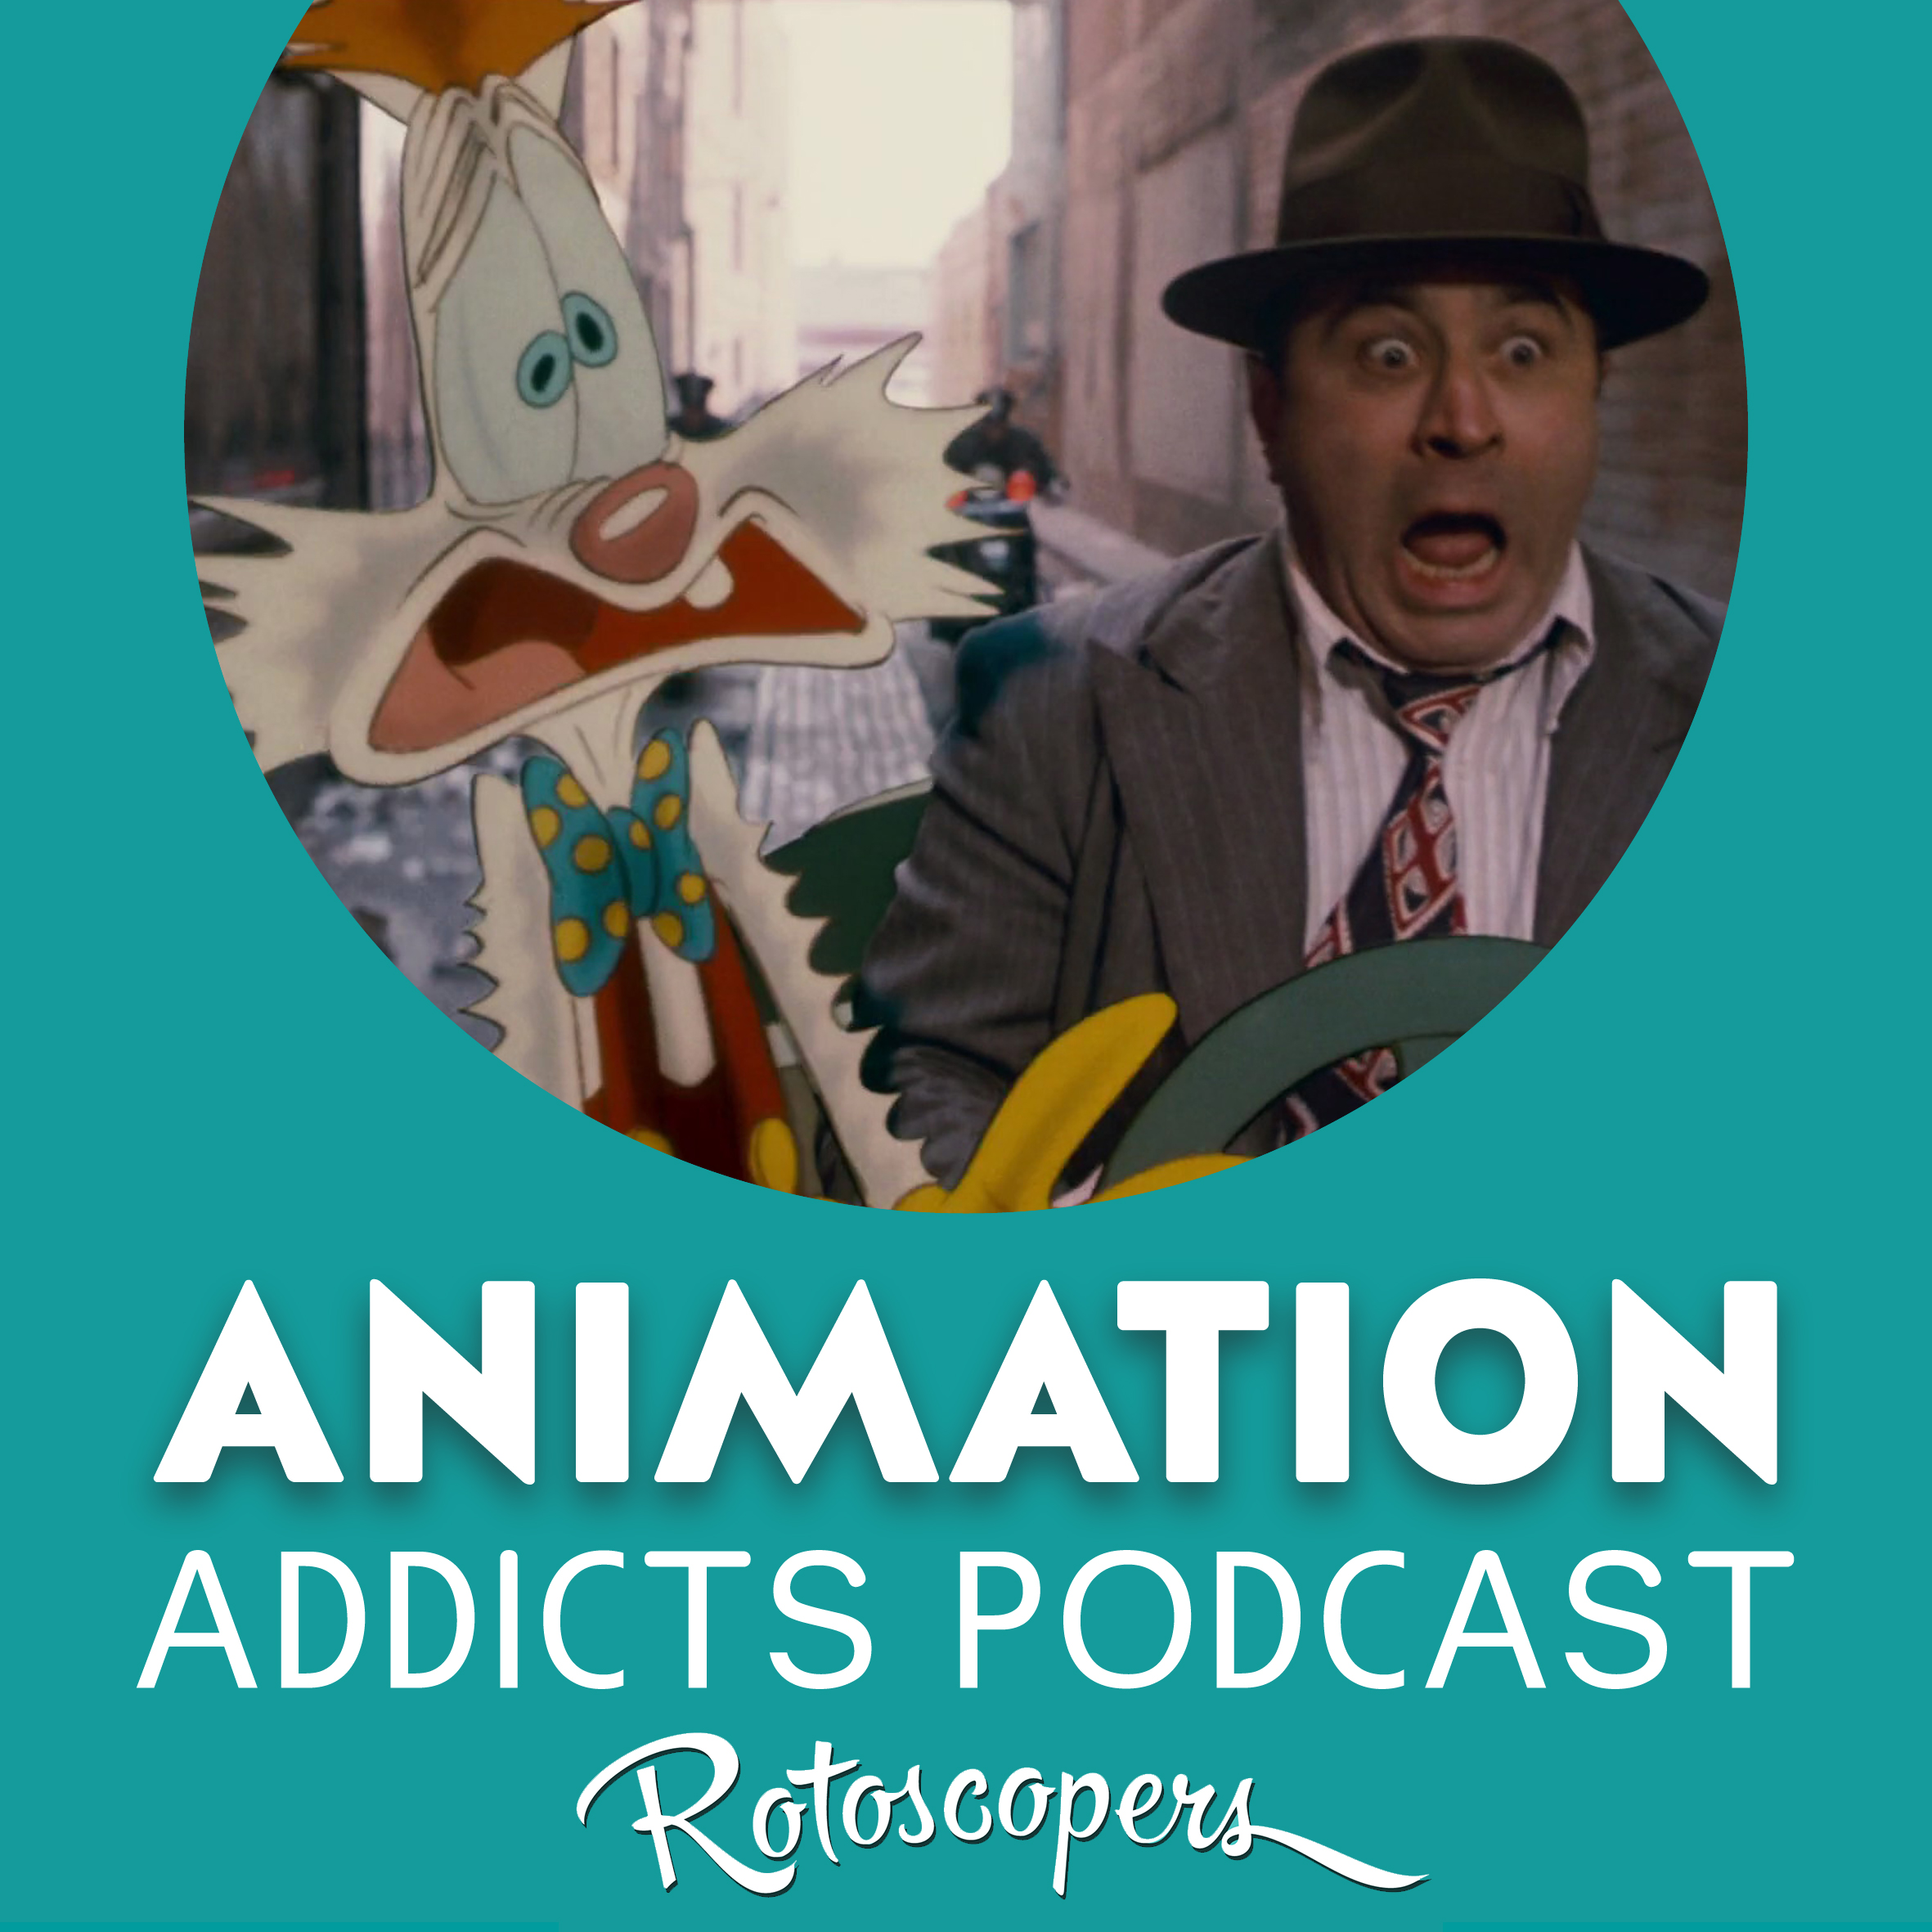 137 Who Framed Roger Rabbit - I'm Not Bad, I'm Just Drawn That Way